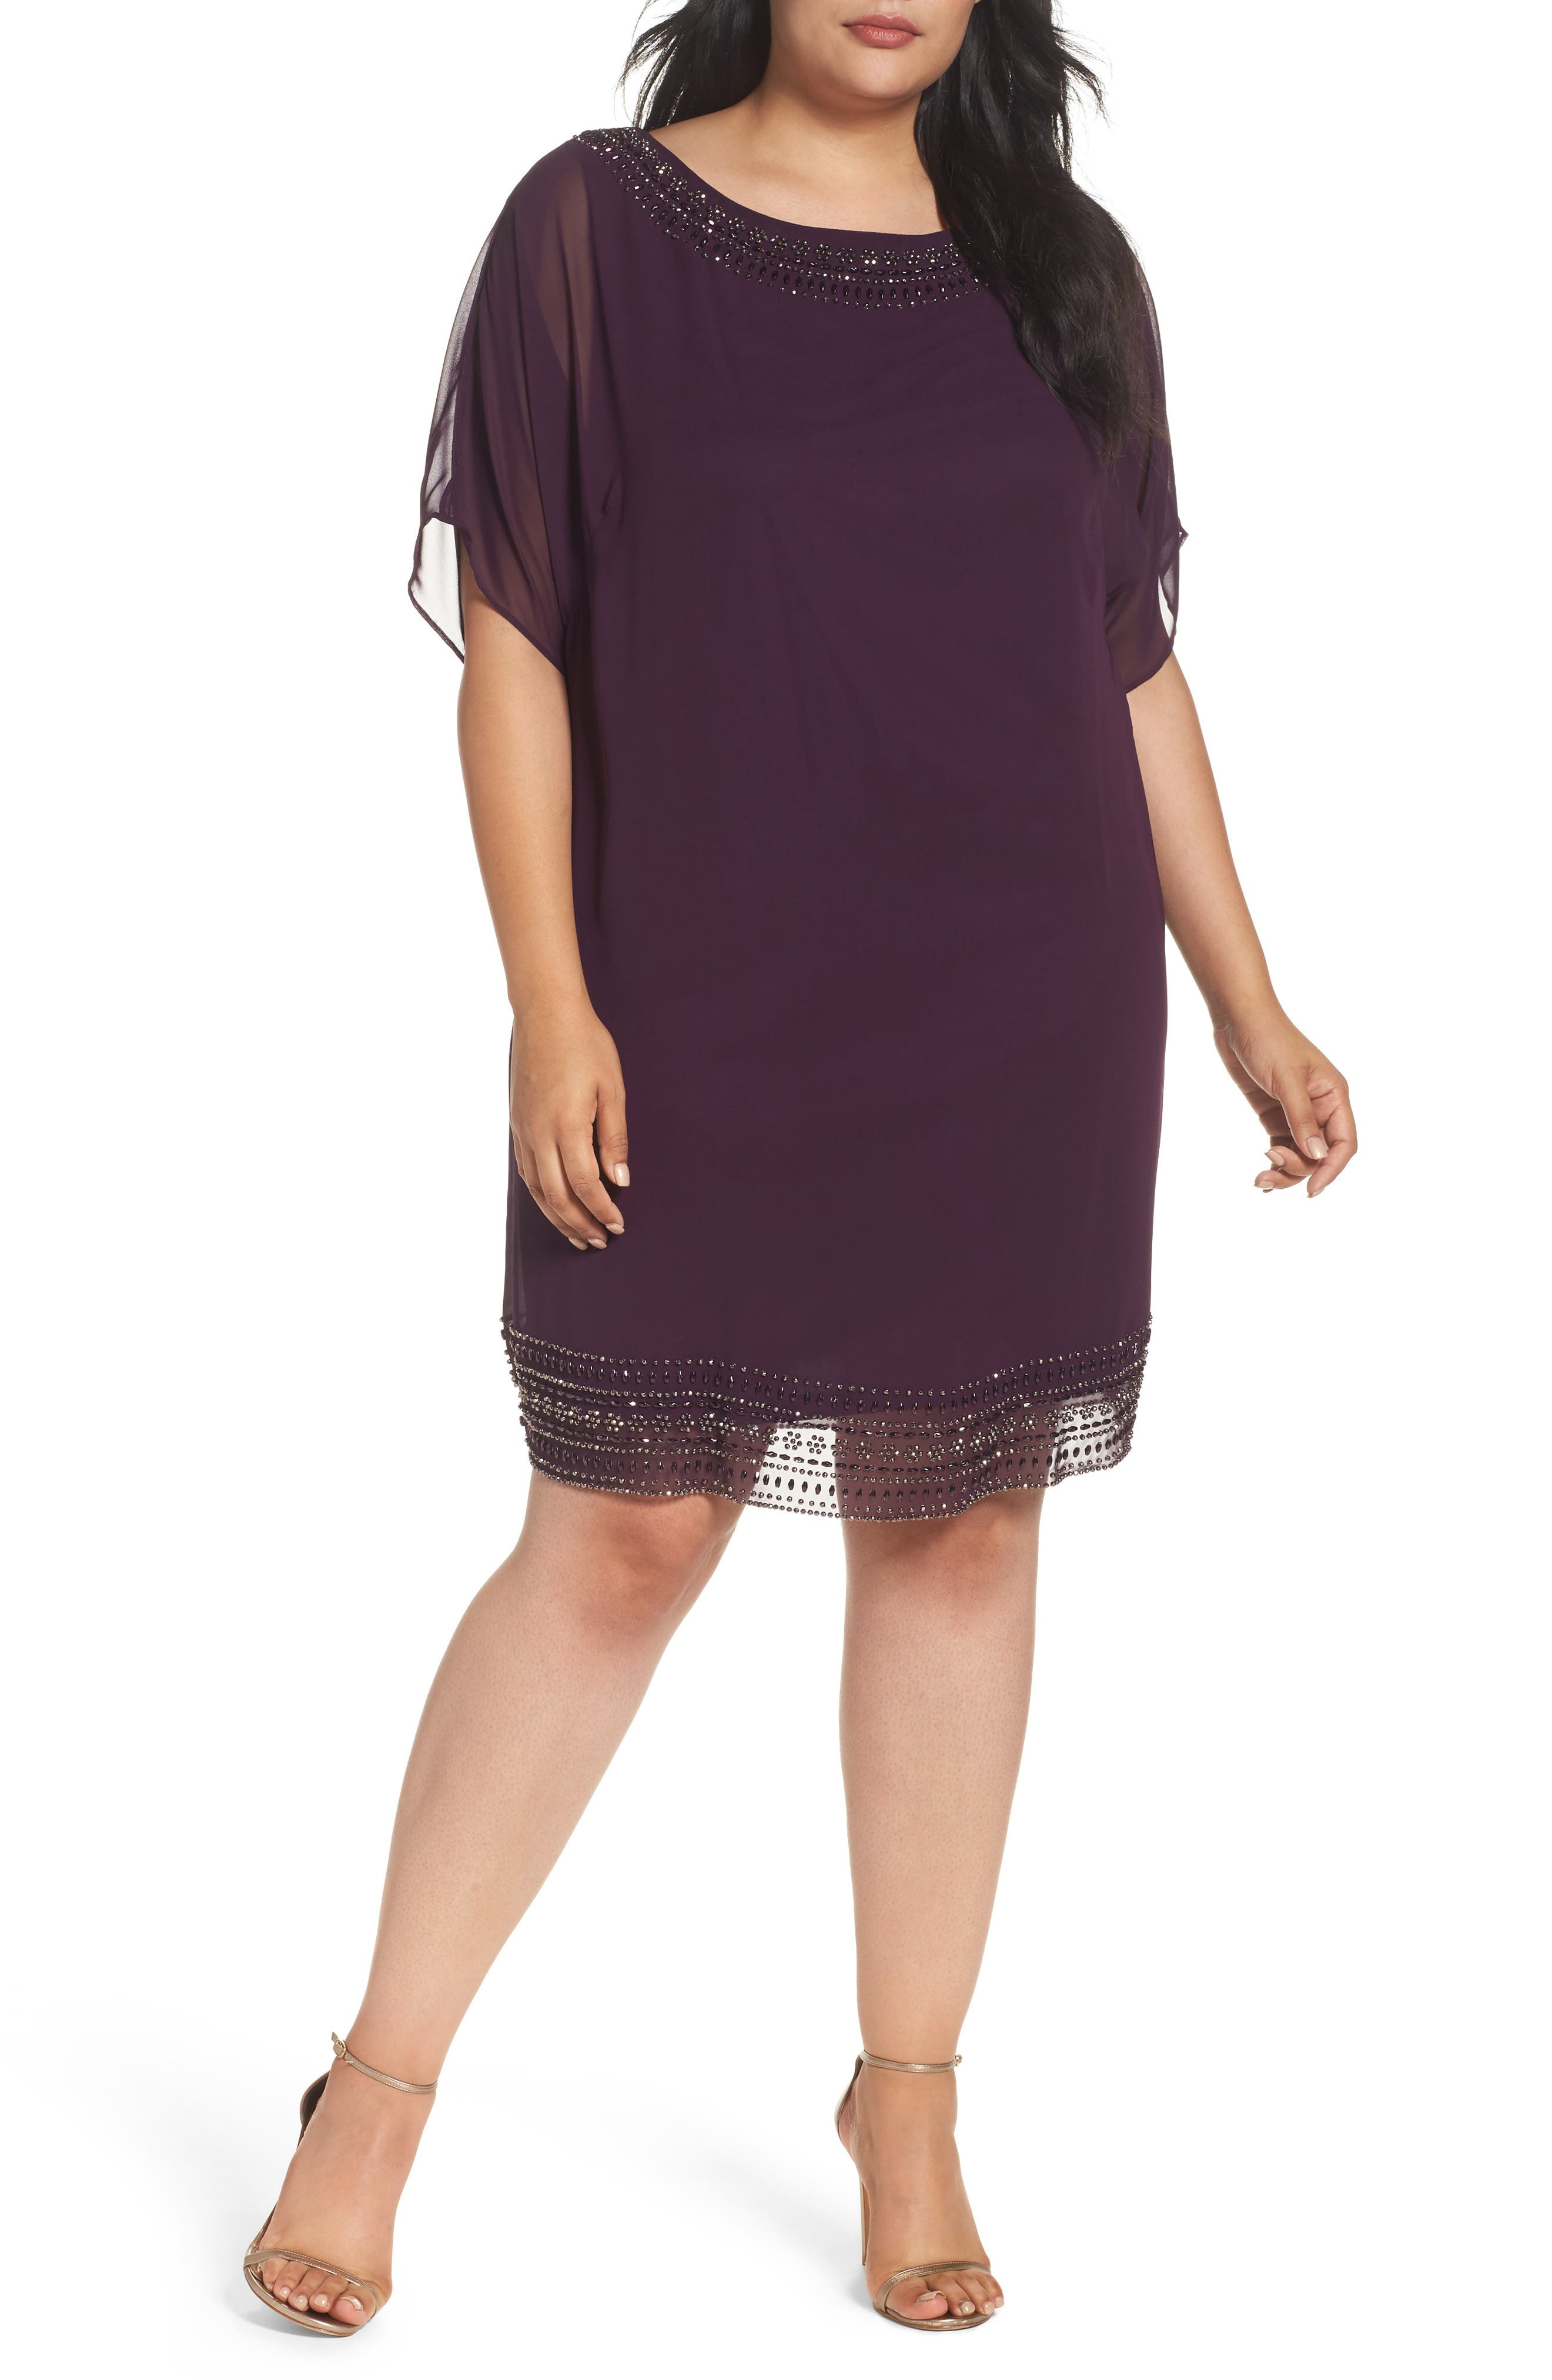 Alternate Image 1 Selected - Xscape Embellished Split Sleeve Chiffon Shift Dress (Plus Size)